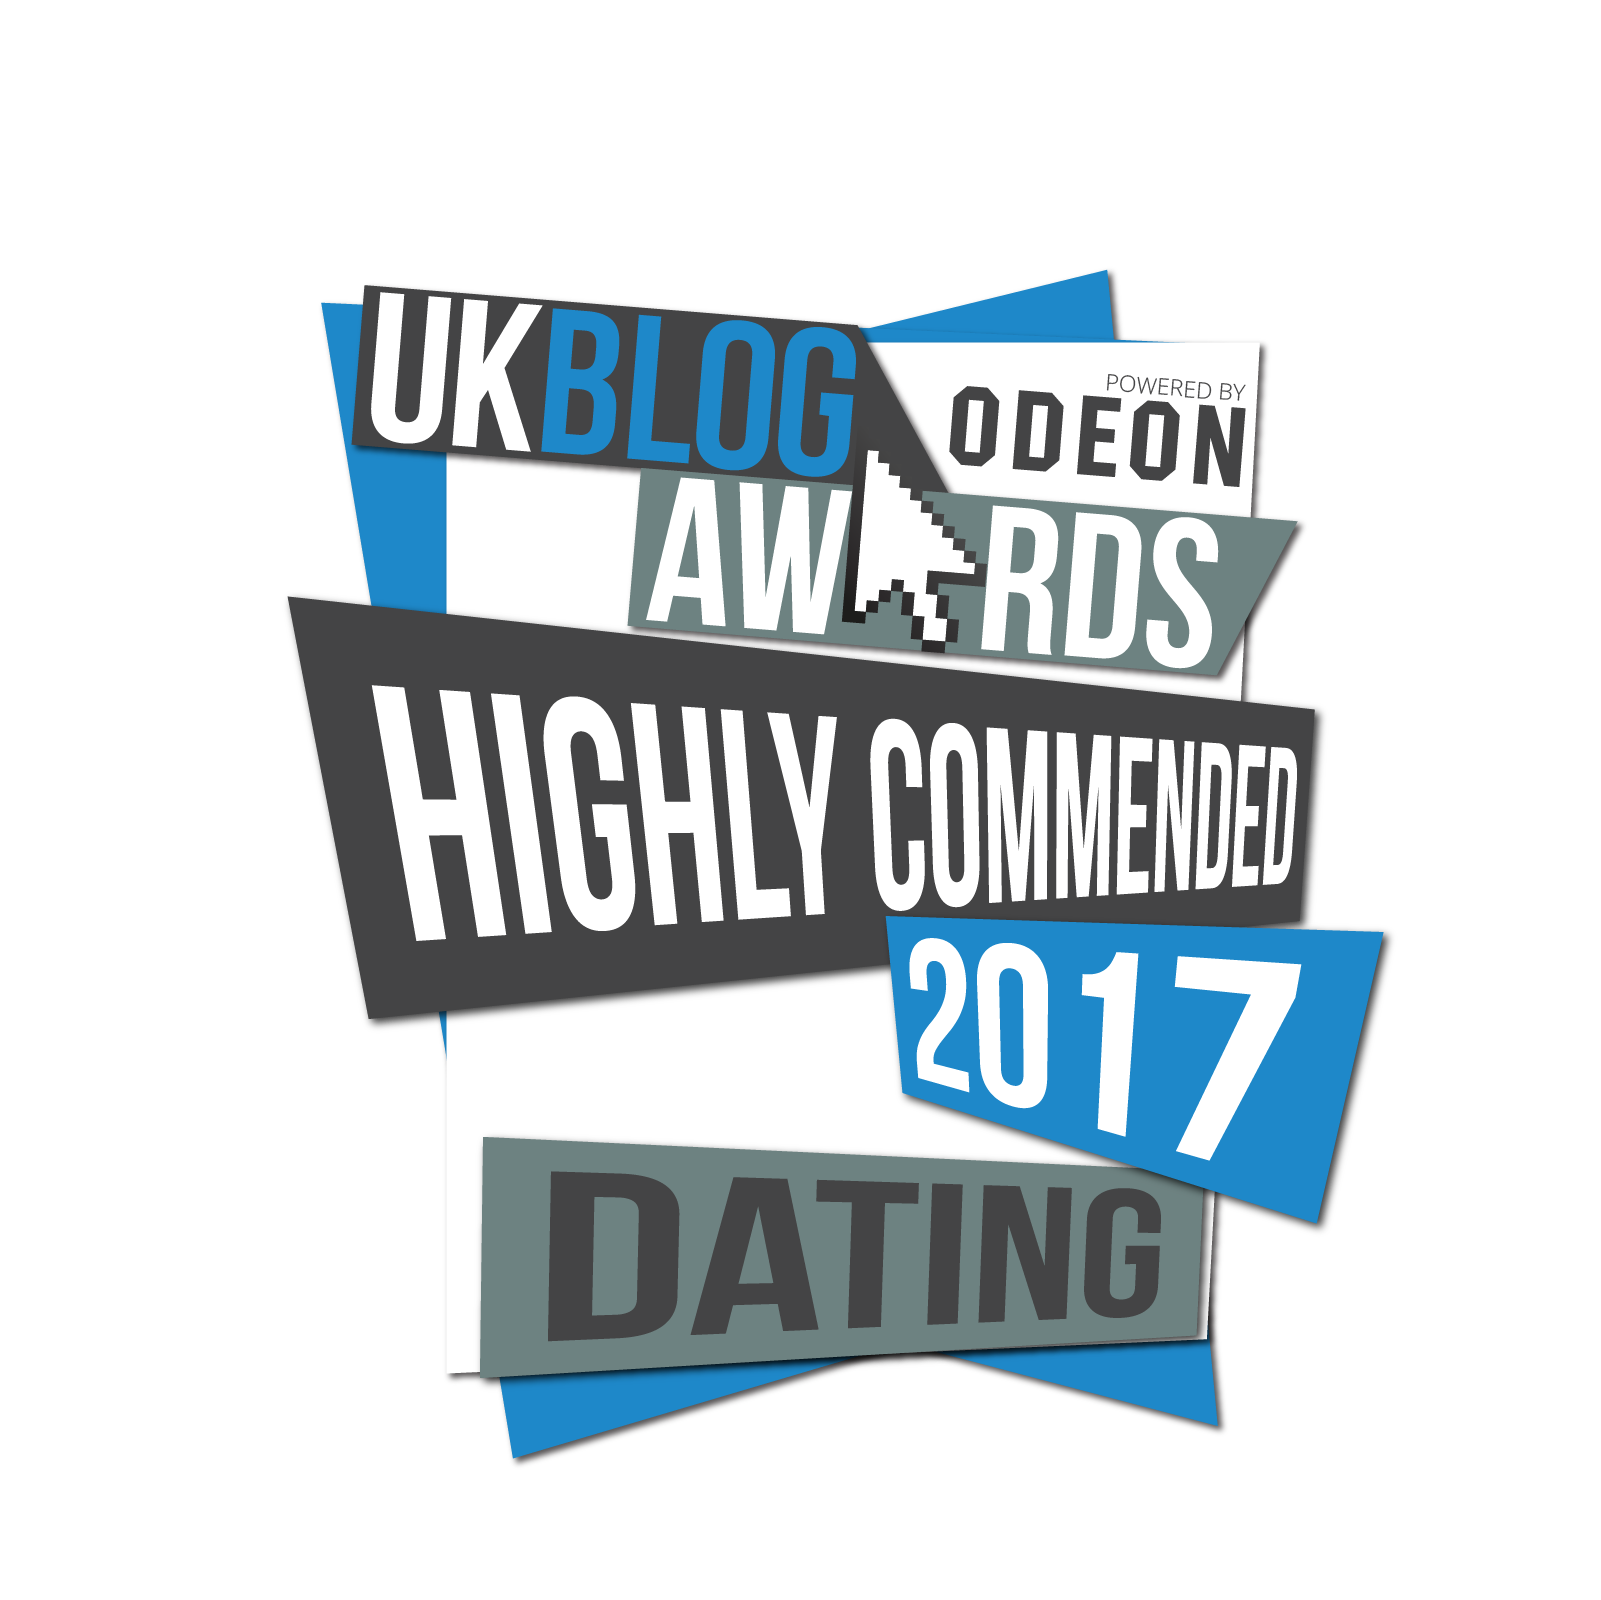 highly commended in dating